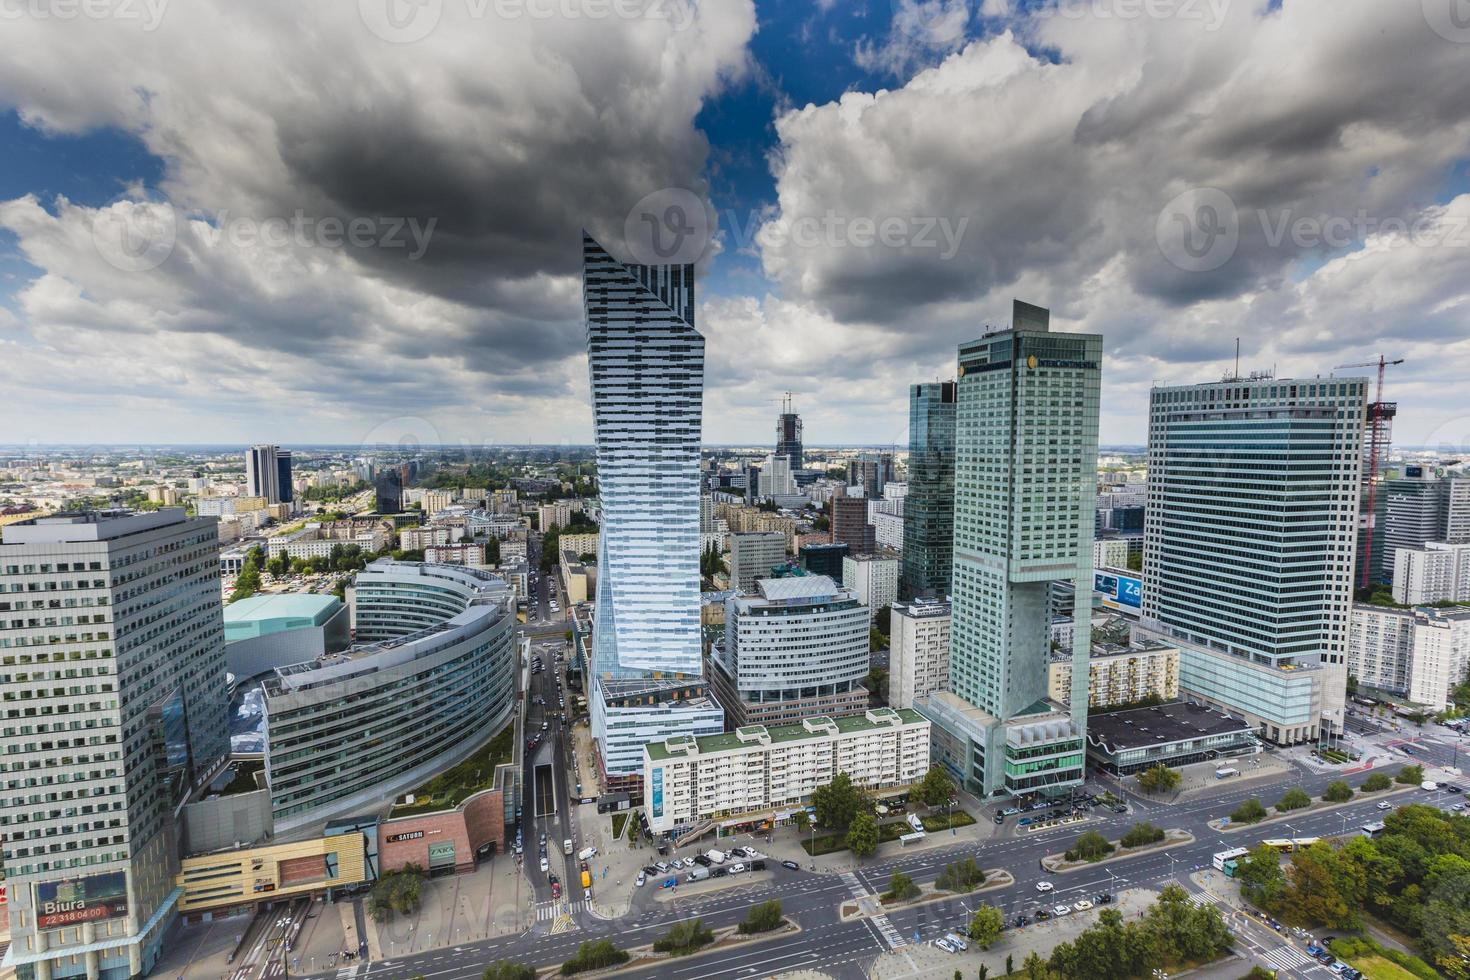 View from the observation deck in Warsaw. photo